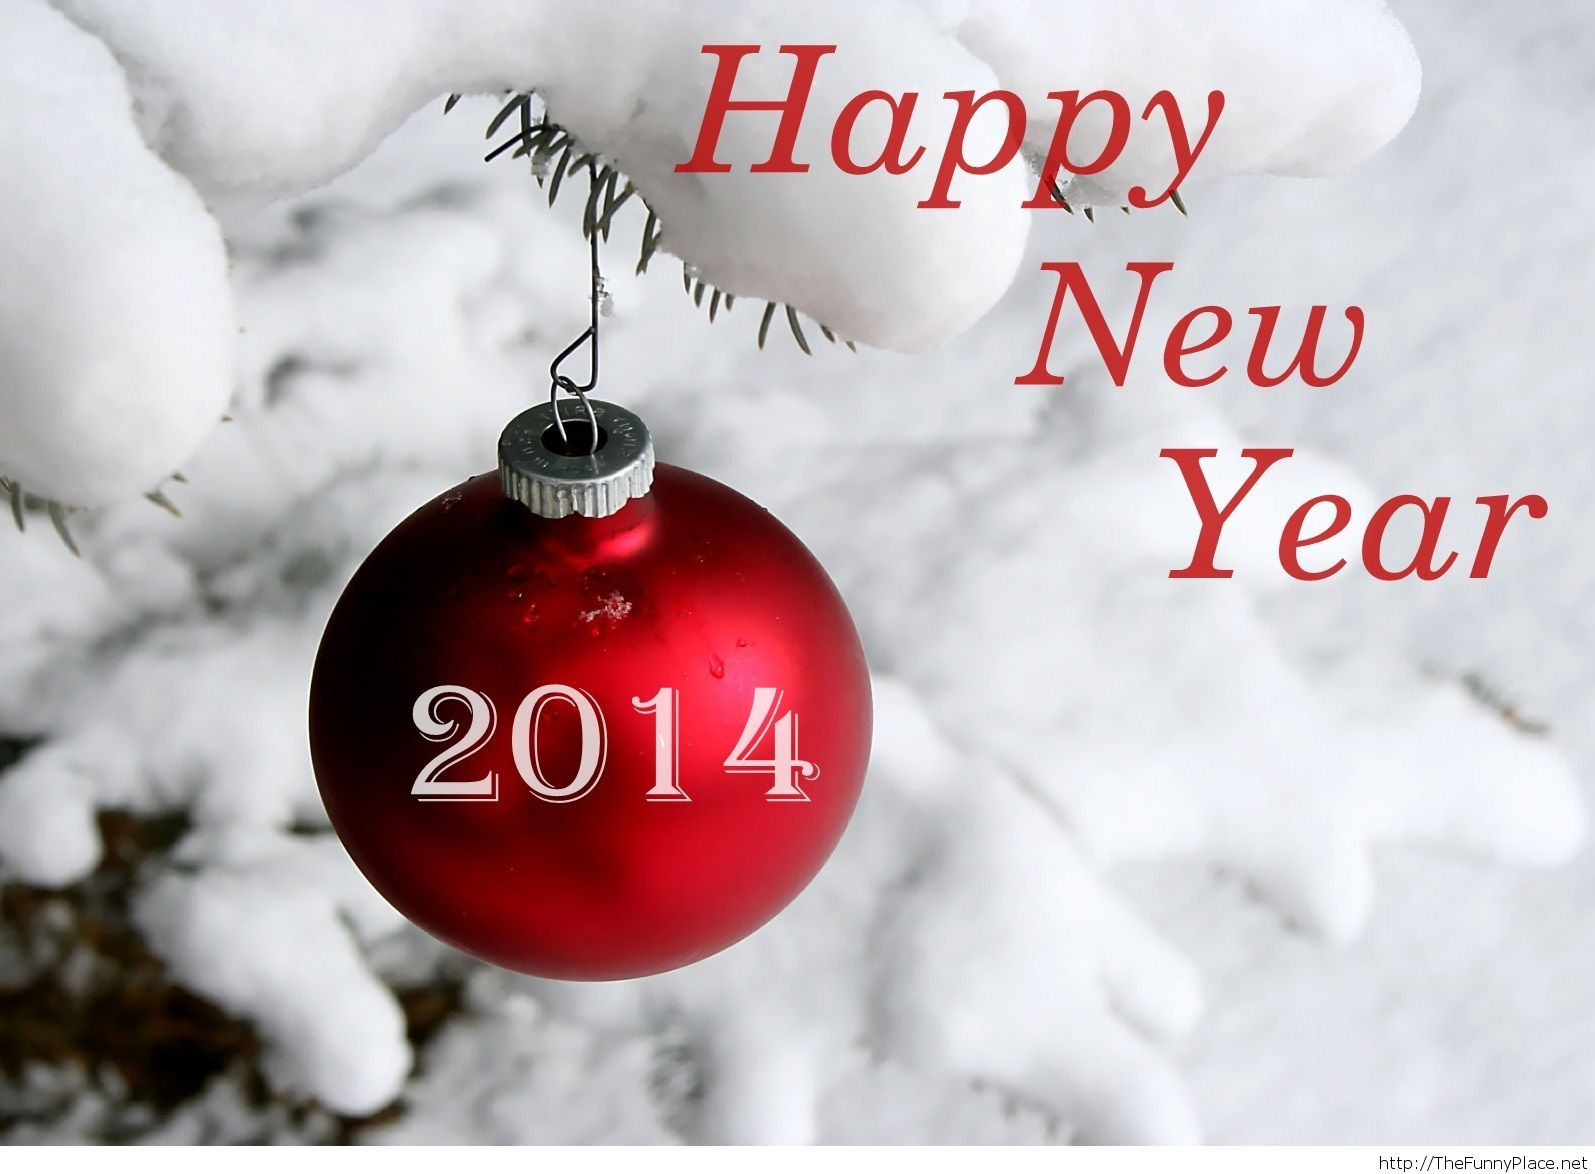 Happy New Year 2014 Wallpaper And Background - New Year Greeting Card Animated , HD Wallpaper & Backgrounds